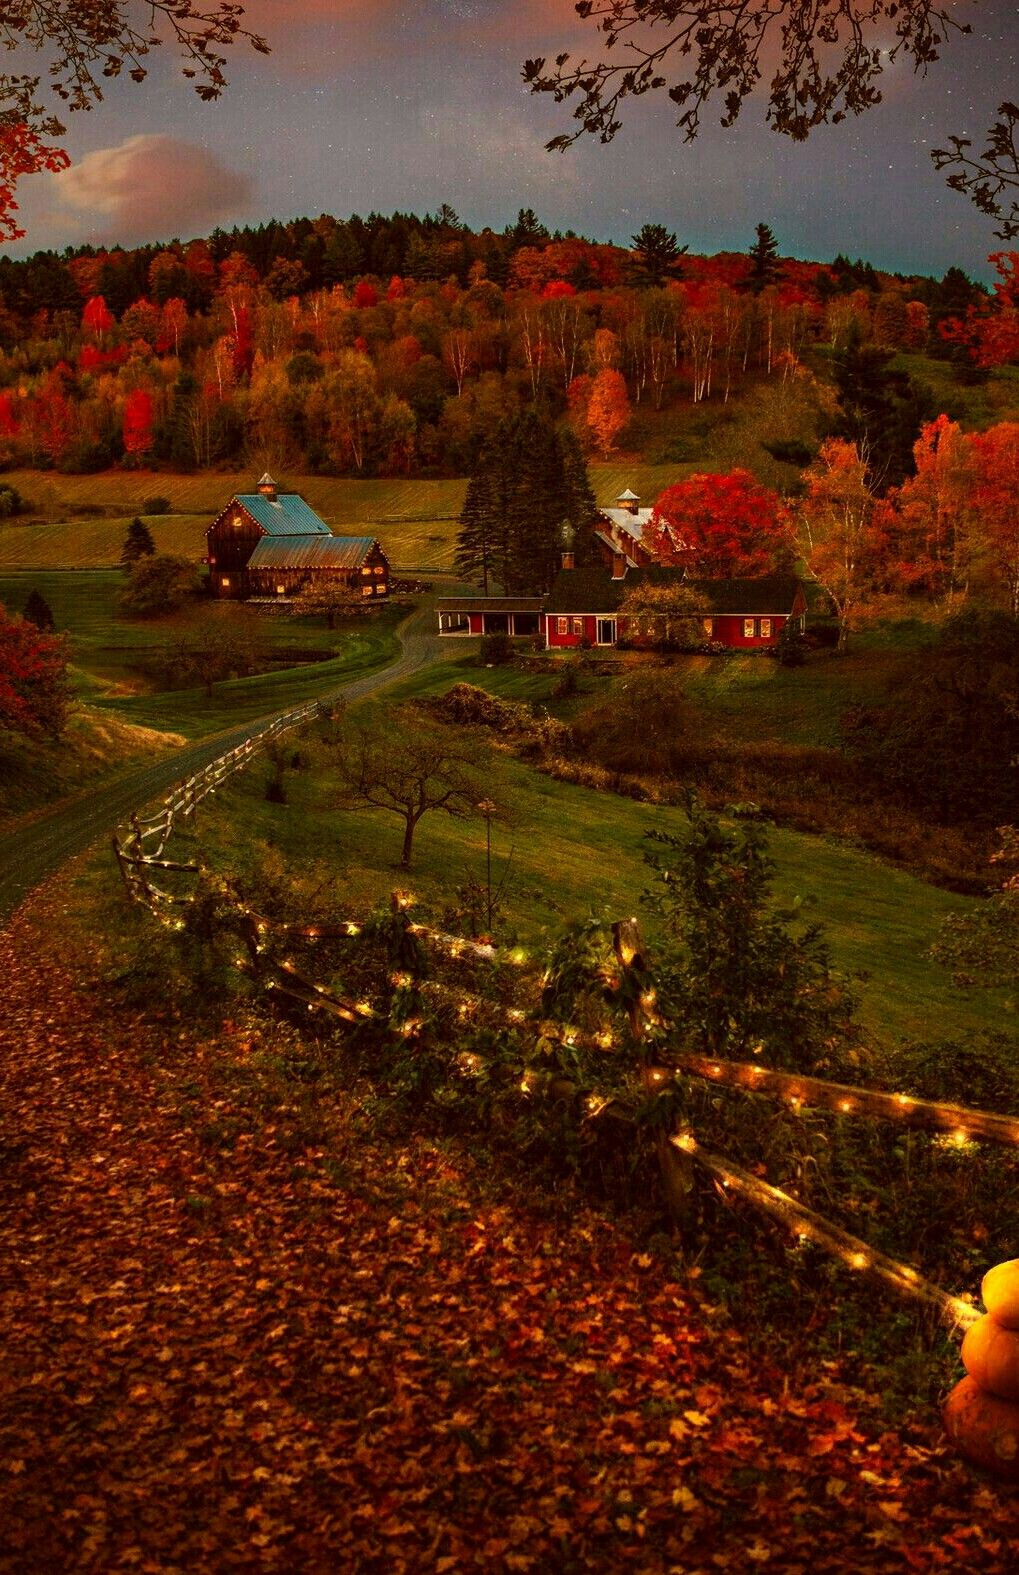 Sleepy hollow farm, Woodstock, Vermont. #autumnscenes